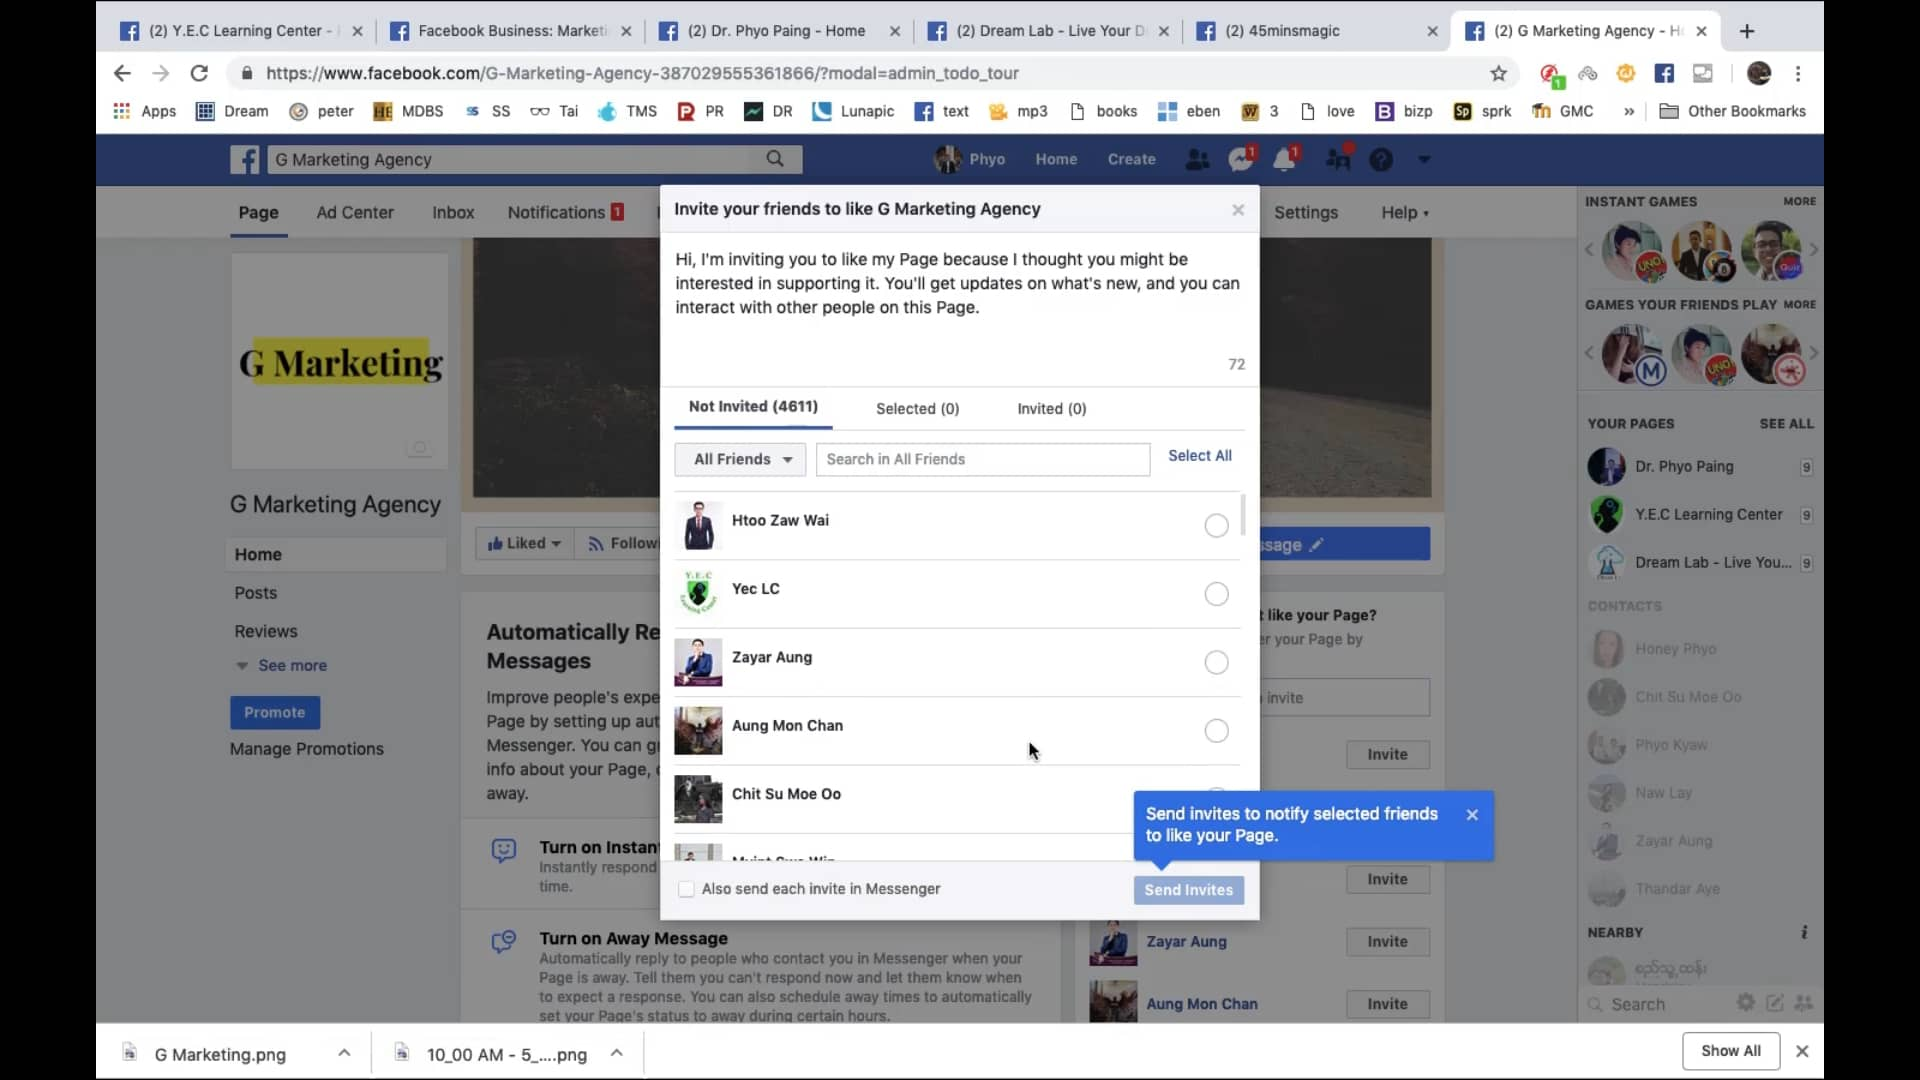 14. Page Like and Sending Invites